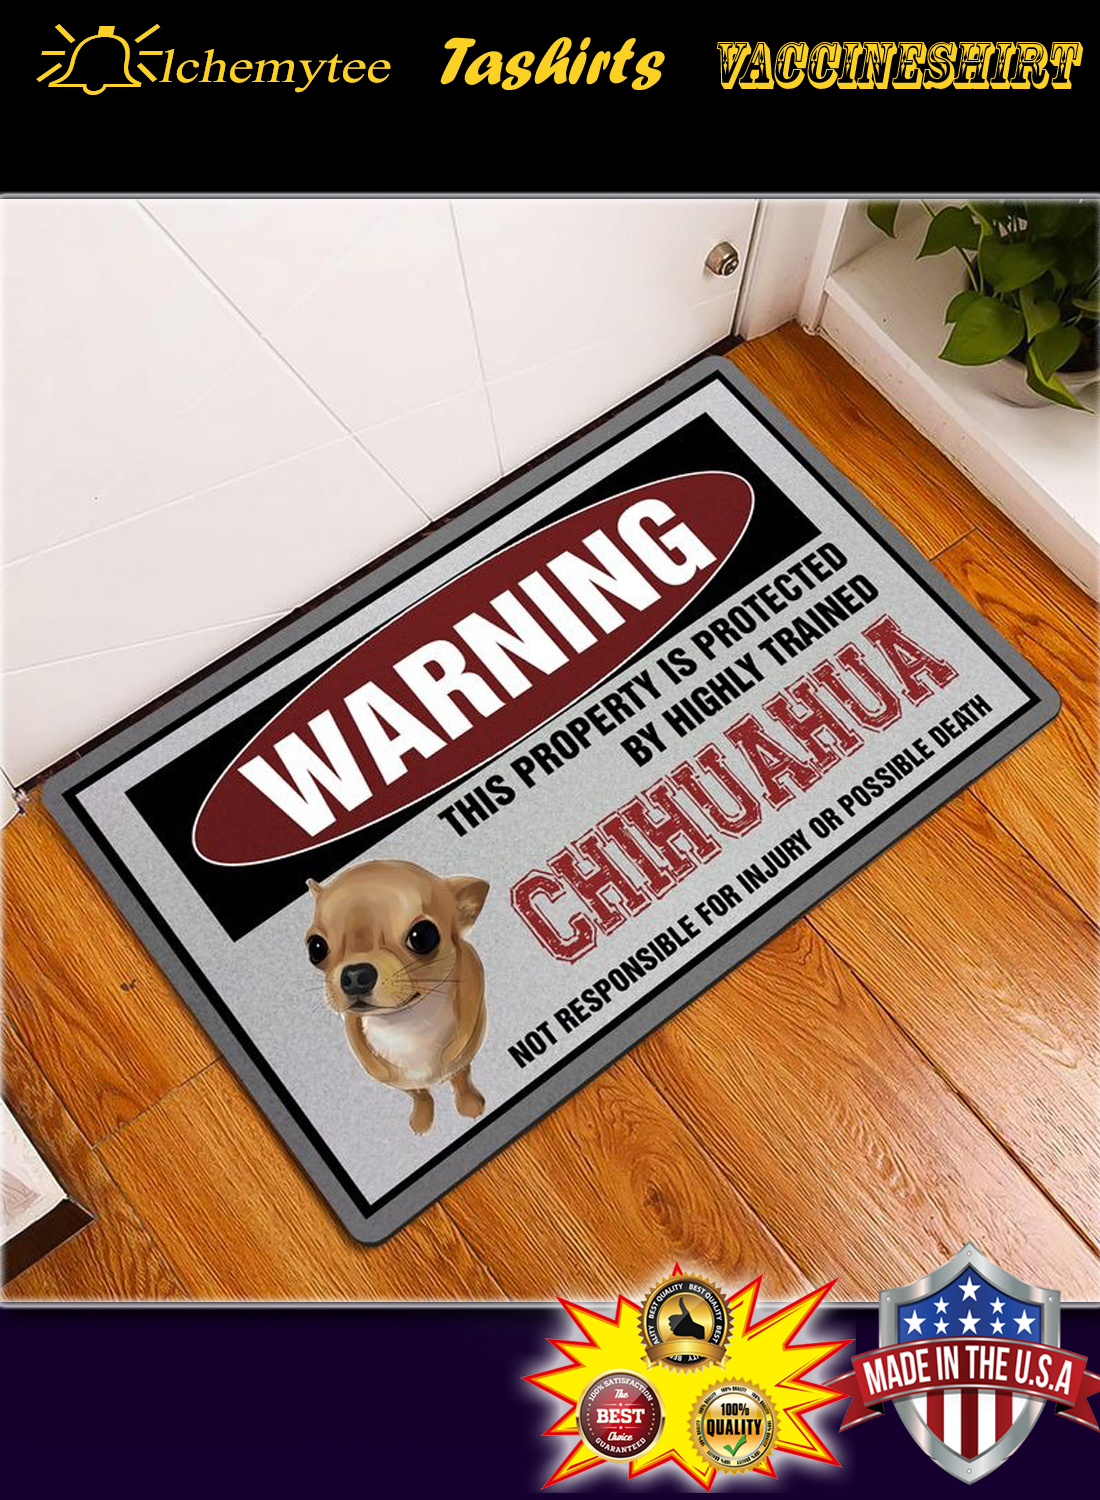 Warning this property is proctected by highly trained chihuahua doormat